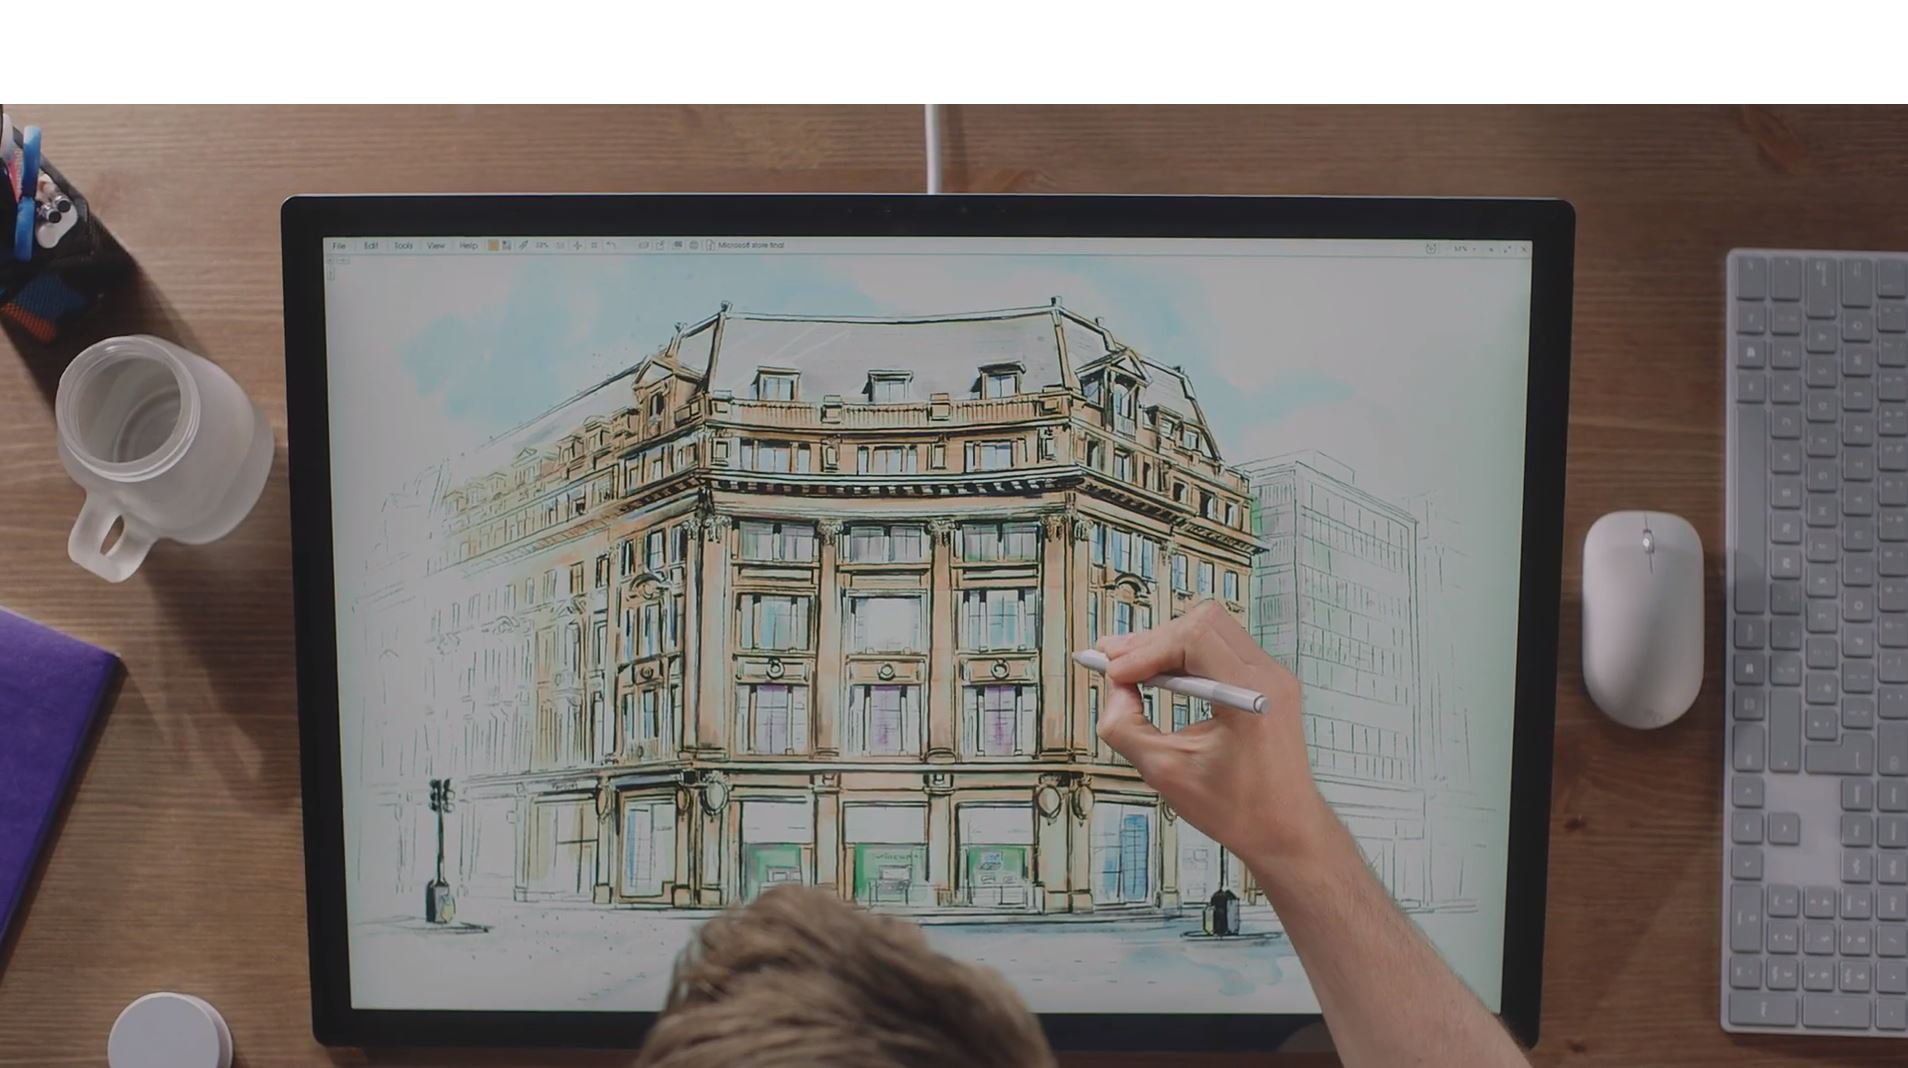 Microsoft Store Published on May 30, 2019 We can???t wait to open a doors to all those who work, live, revisit and emporium in a UK. Join us during a flagship Microsoft Store on Oxford Circus. Opening 11 Jul 2019 #MicrosoftLDN https://www.youtube.com/watch?v=mta3ta7_E2Y